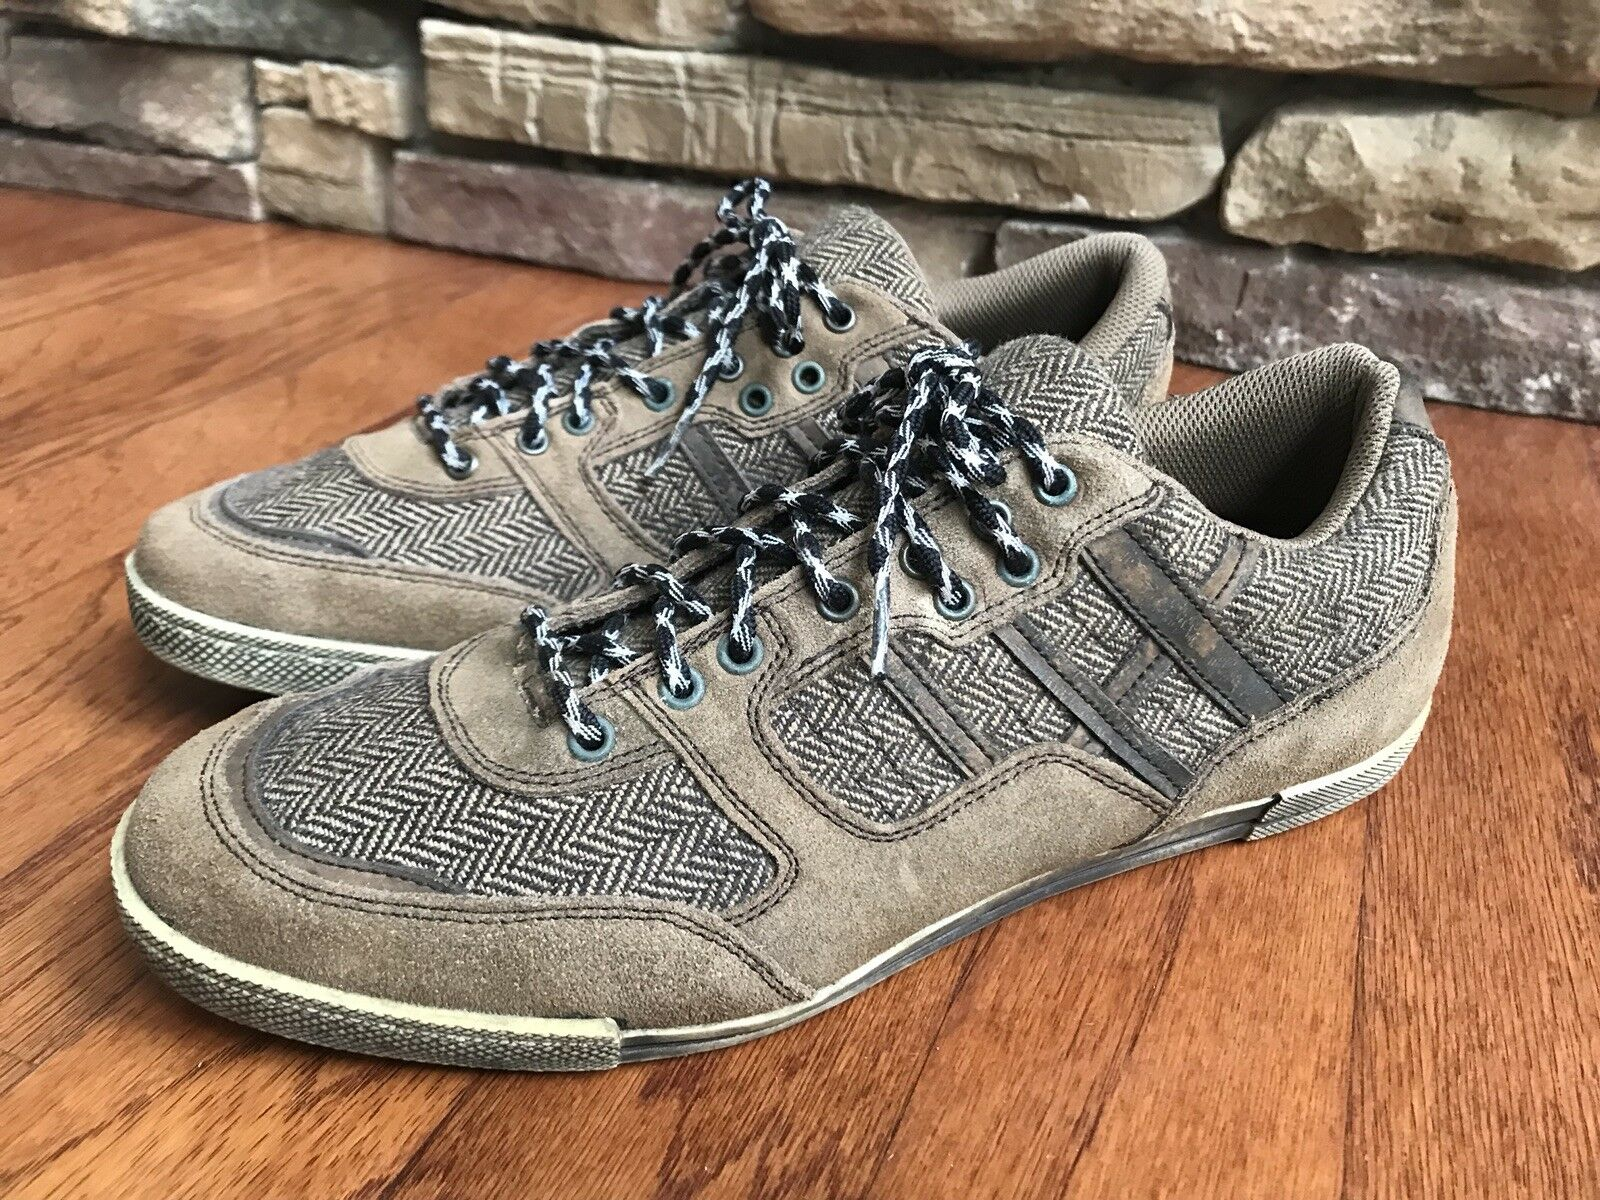 Bull Boxer Men's Leather Suede Herringbone Vintage Rare Size 12 Sneakers Shoes